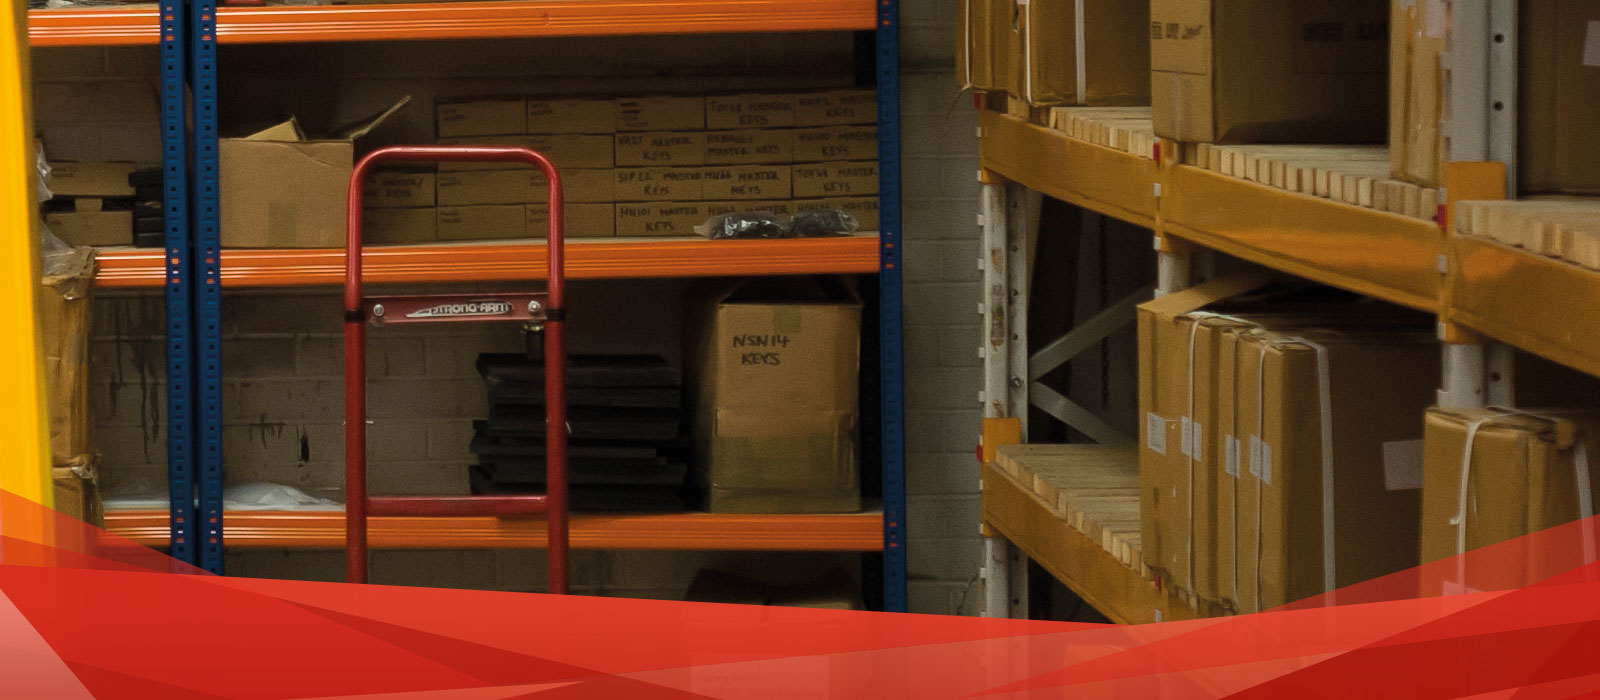 Have the opportunity to progress into a team leading or supervisory role after gaining a wealth of experience studying a Warehousing and Logistics qualification.